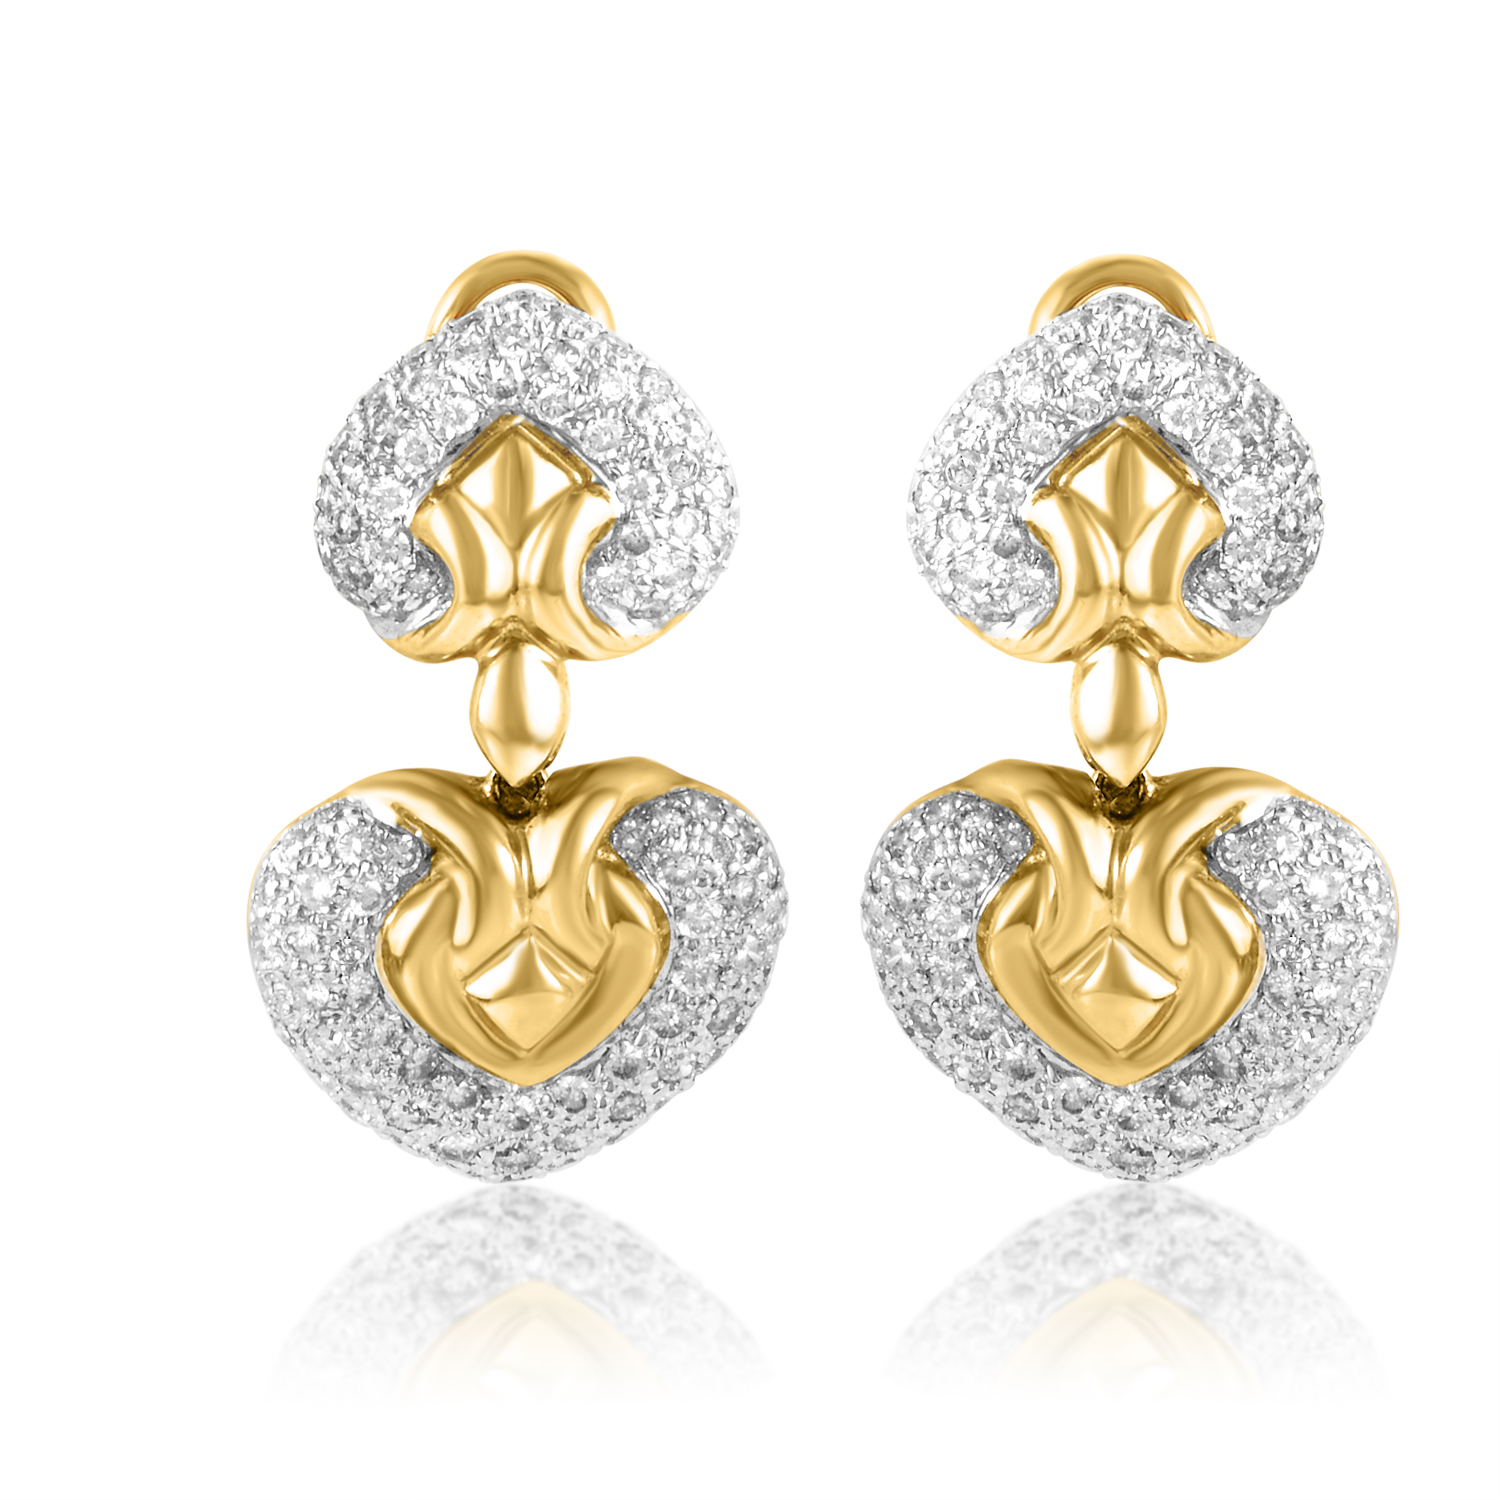 Women's 18K White & Yellow Gold Diamond Heart Earrings CED9259